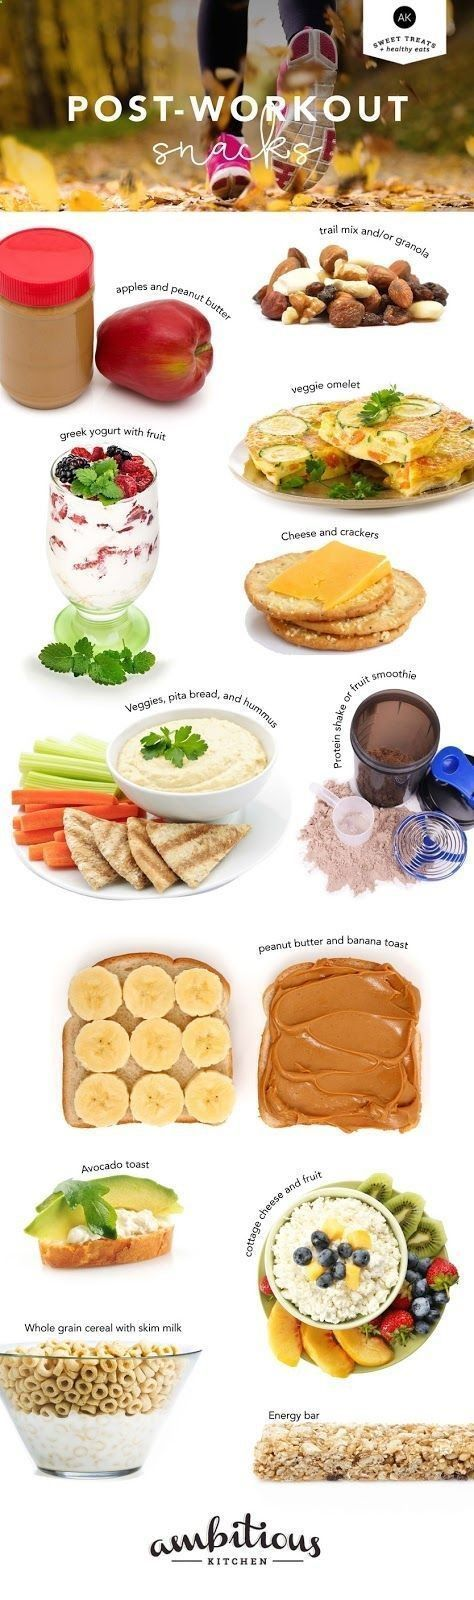 Fat Burning Meals Plan-Tips Six-pack abs, gain muscle or weight loss, these workout plan is great for beginners men and women. (Fitness Femme Repas) - We Have Developed The Simplest And Fastest Way To Preparing And Eating Delicious Fat Burning Meals Every #WeightLossforWomen